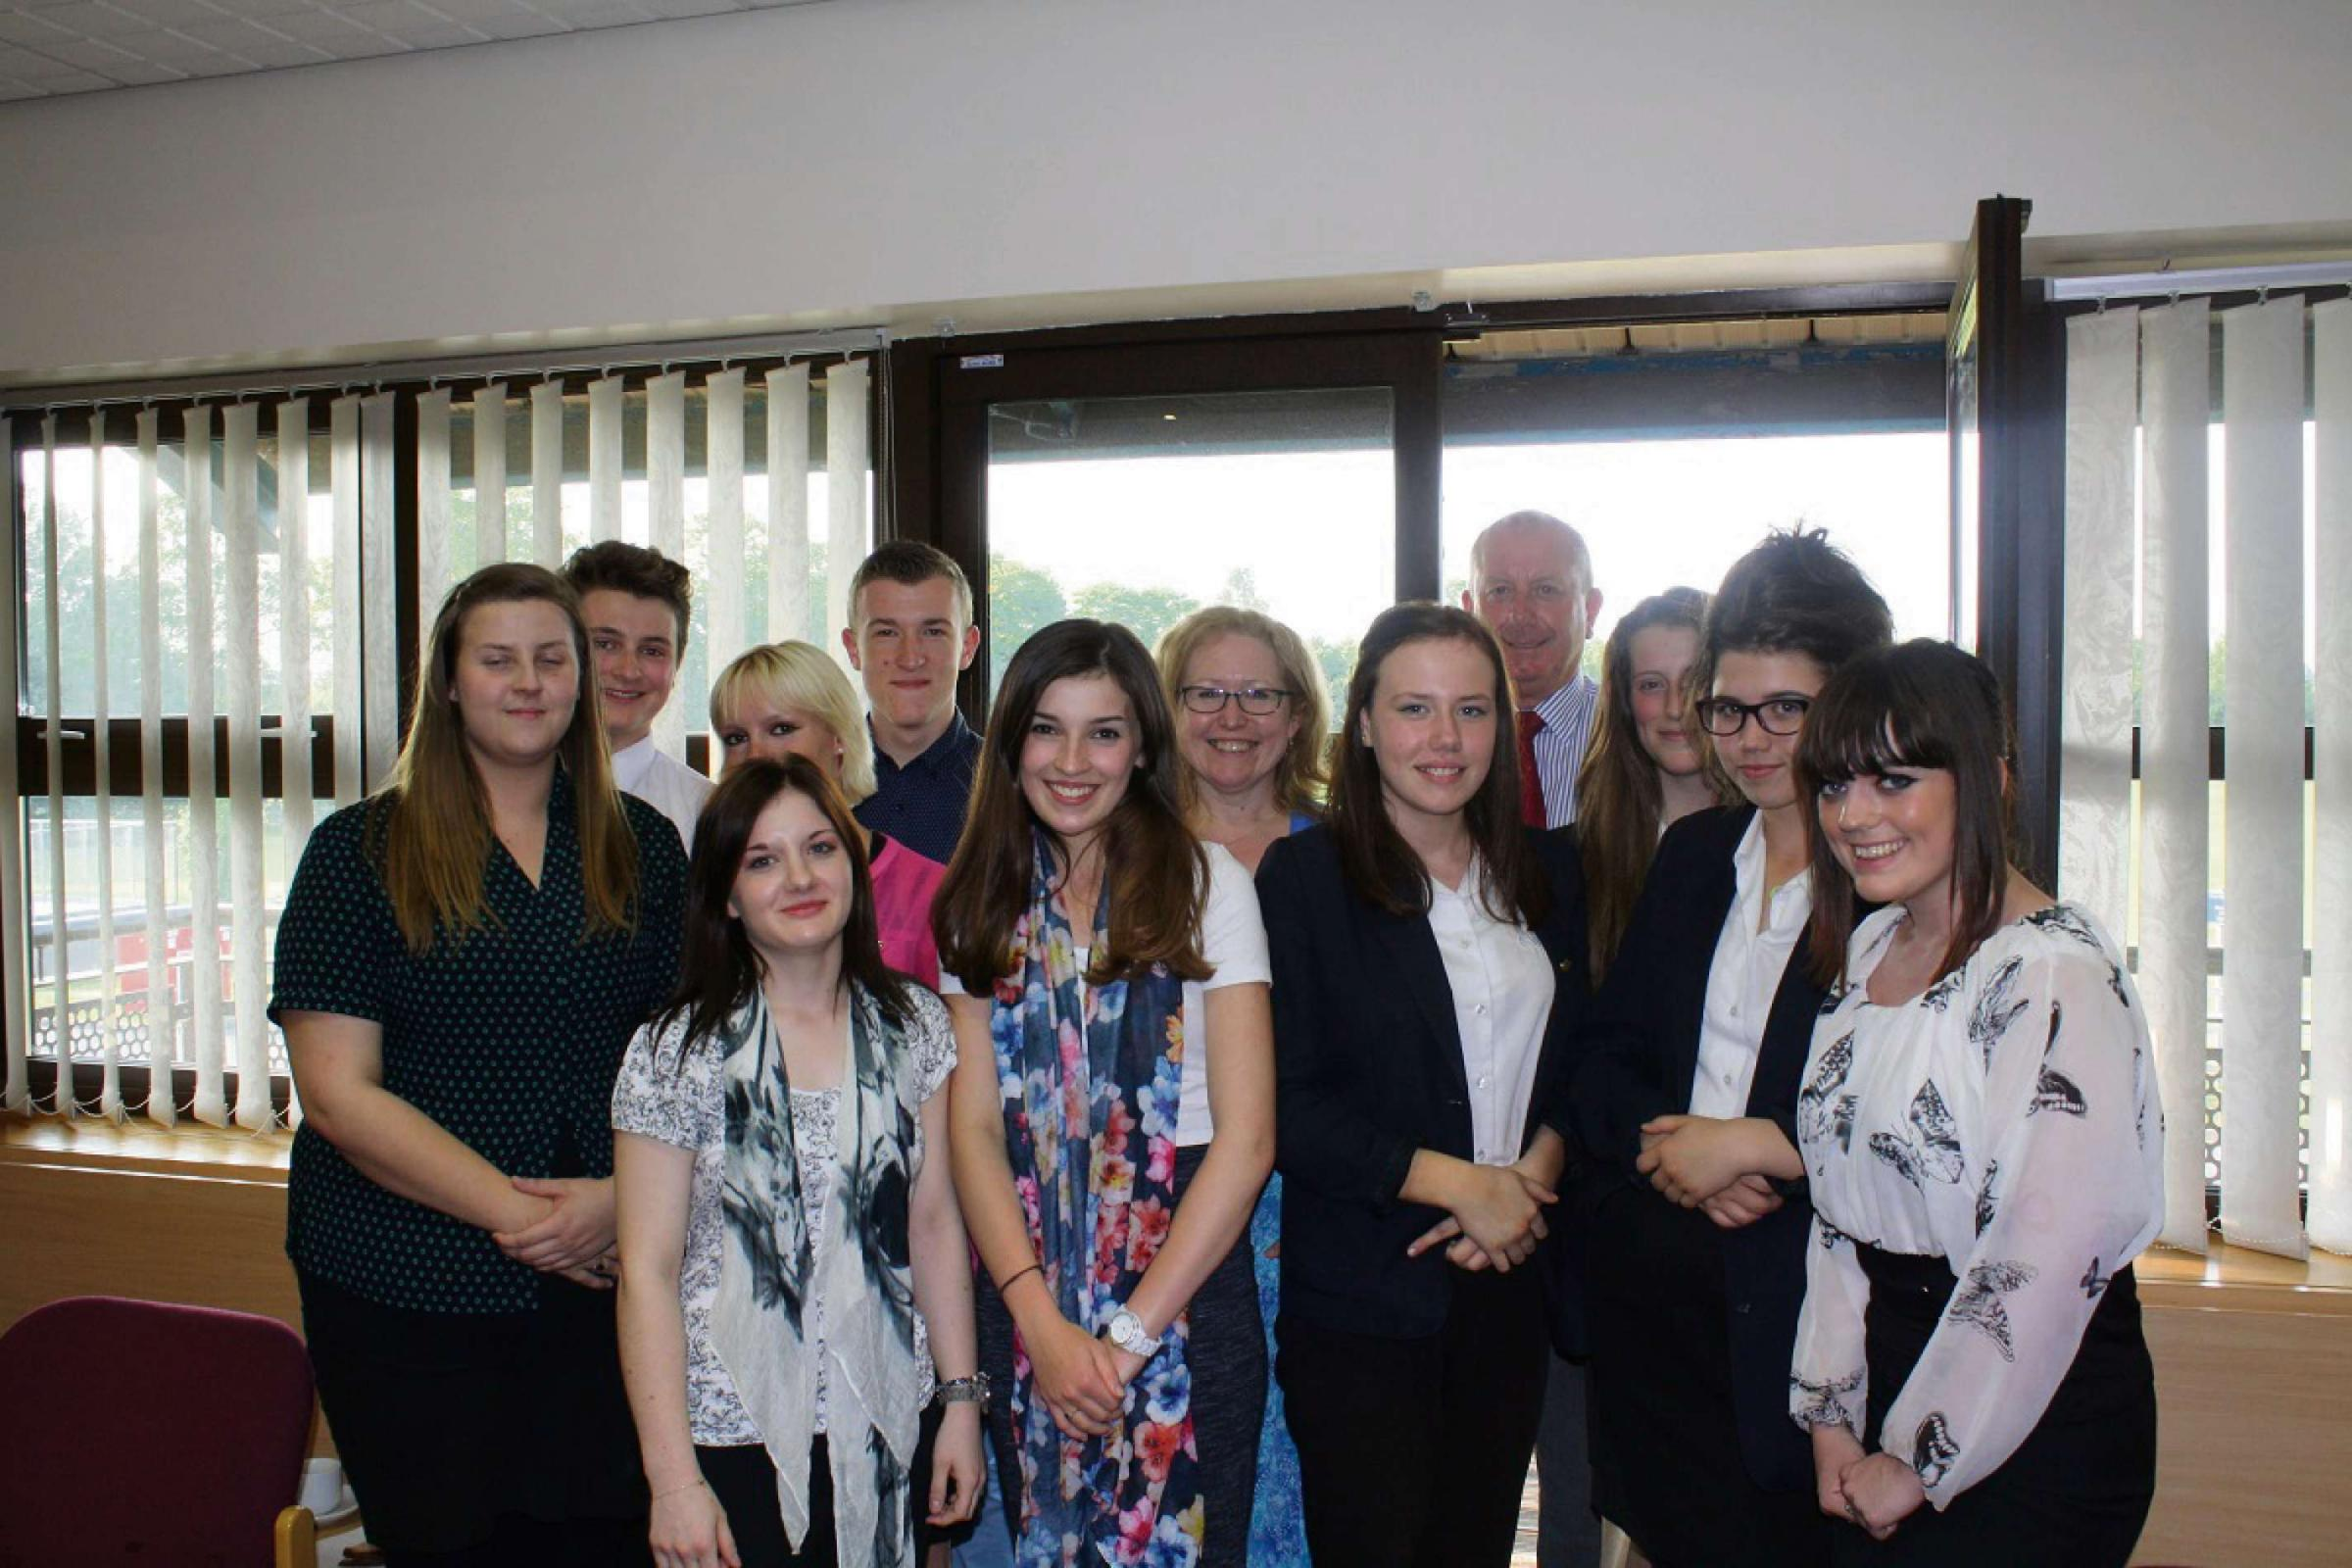 Members of Worcestershire Health and Care NHS Trust's youth board celebrate their first anniversary with chief executive Sarah Dugan and chairman Chris Burdon